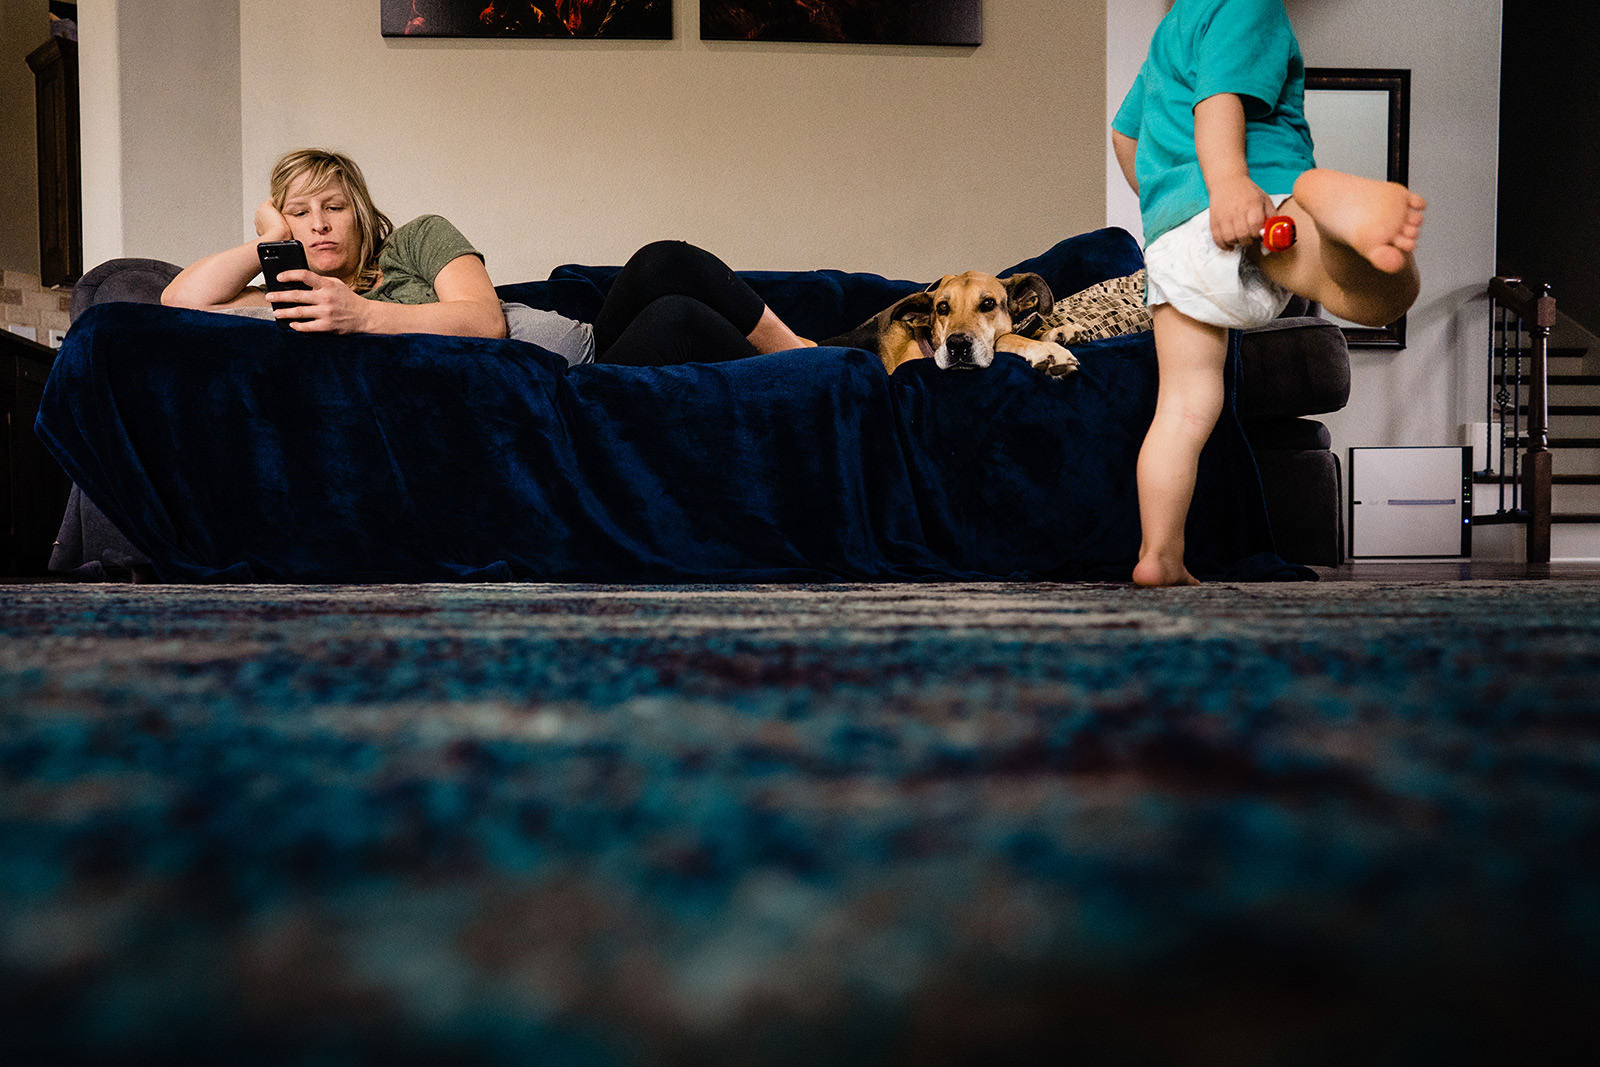 Documentary photo of family at home during Covid-19 self isolation